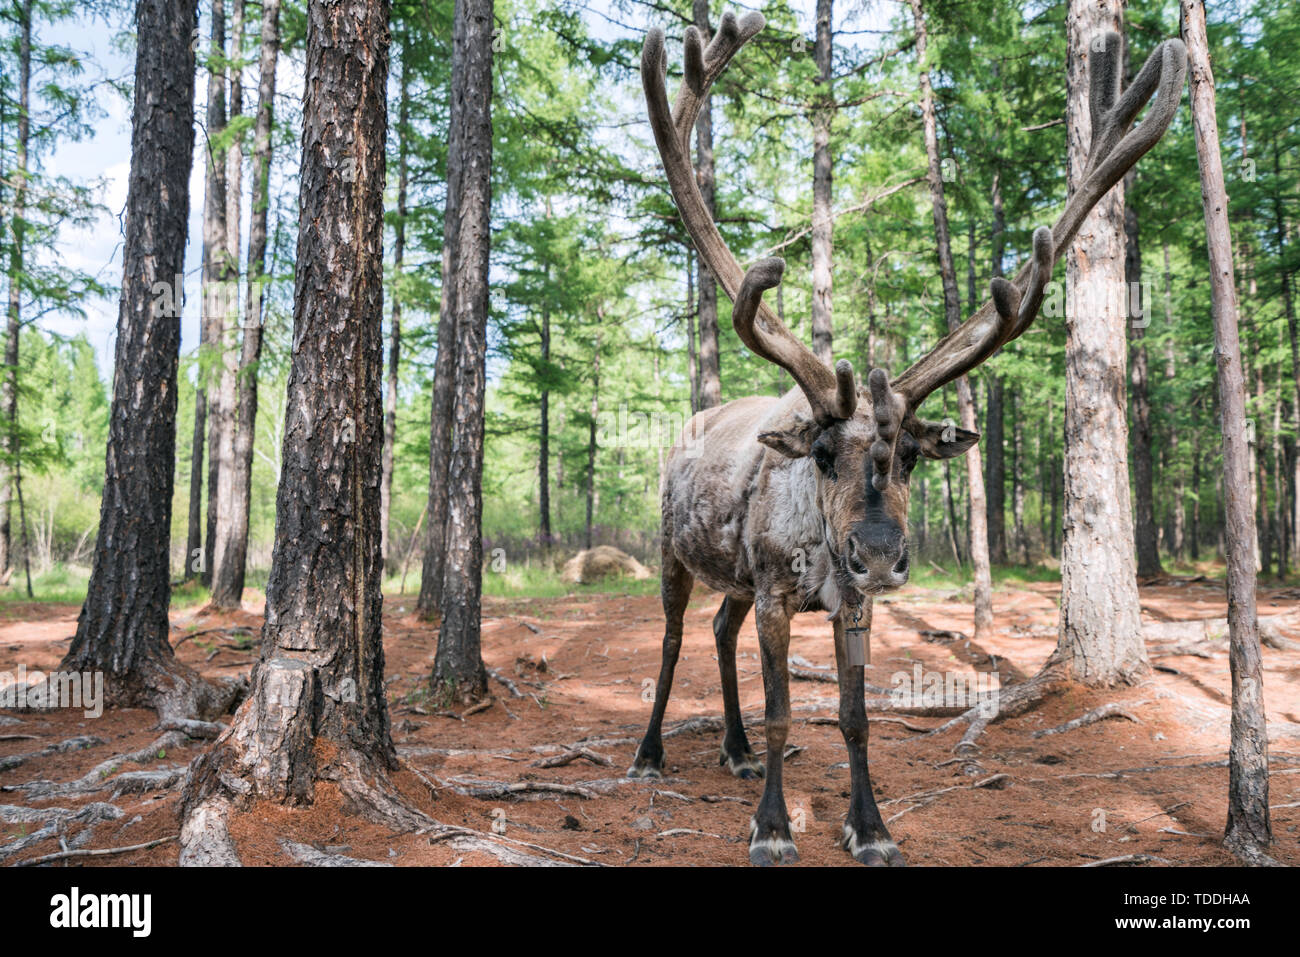 A middle-aged reindeer in Oluguya Park, Hulunbuir Gen River City, Inner Mongolia, China Stock Photo